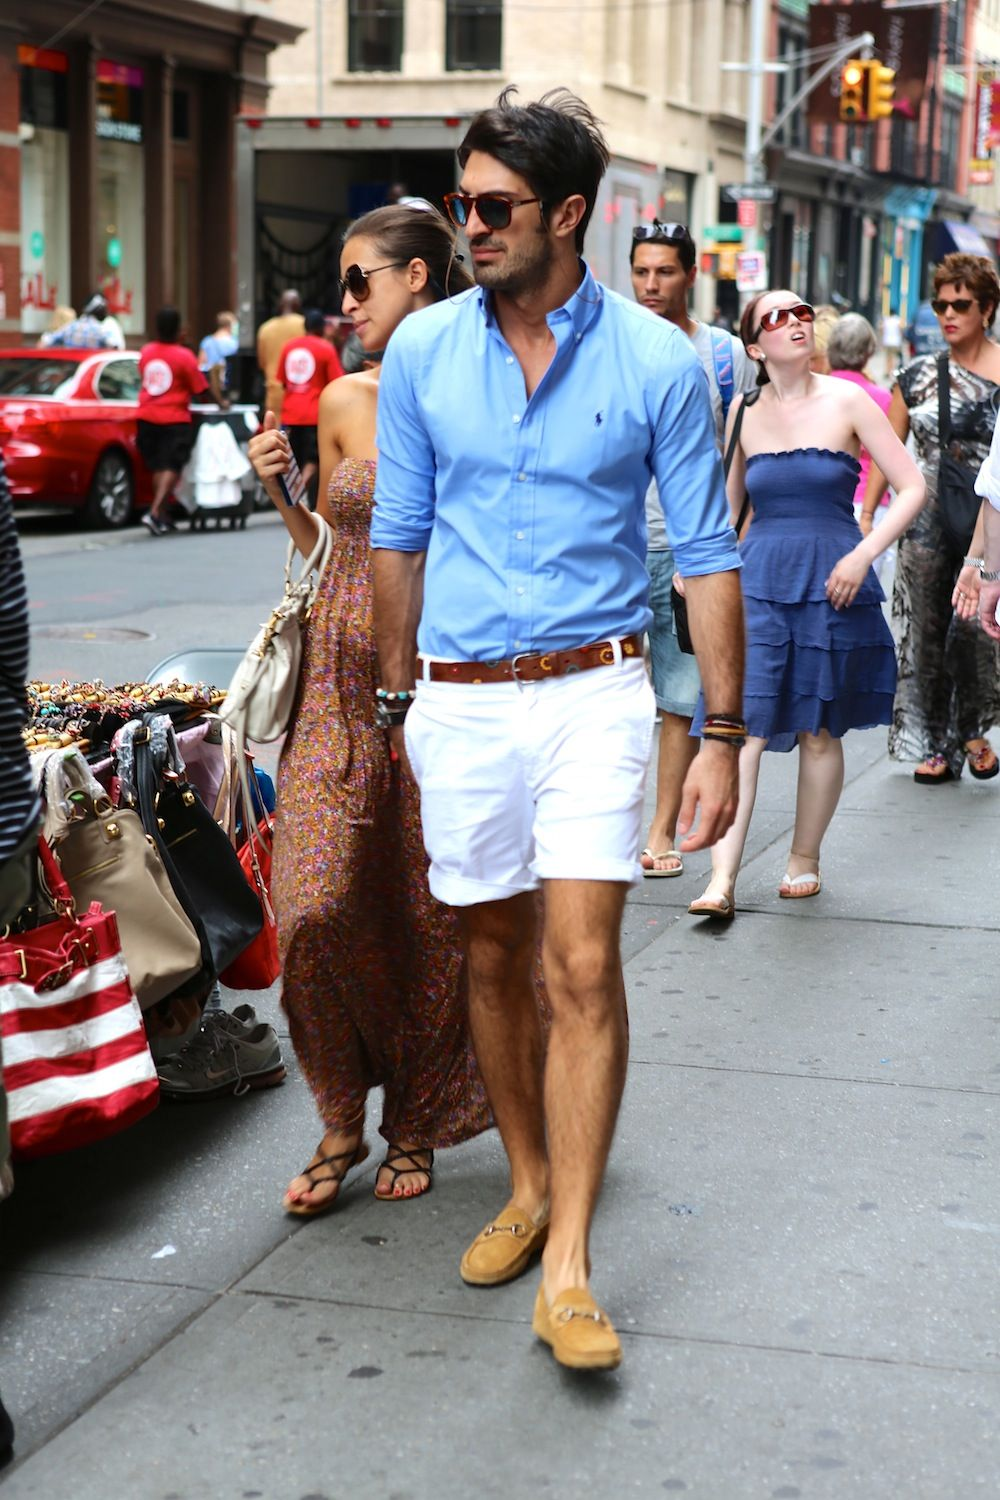 Dressed up shorts, summer men's fashion, New York Street Style via ...